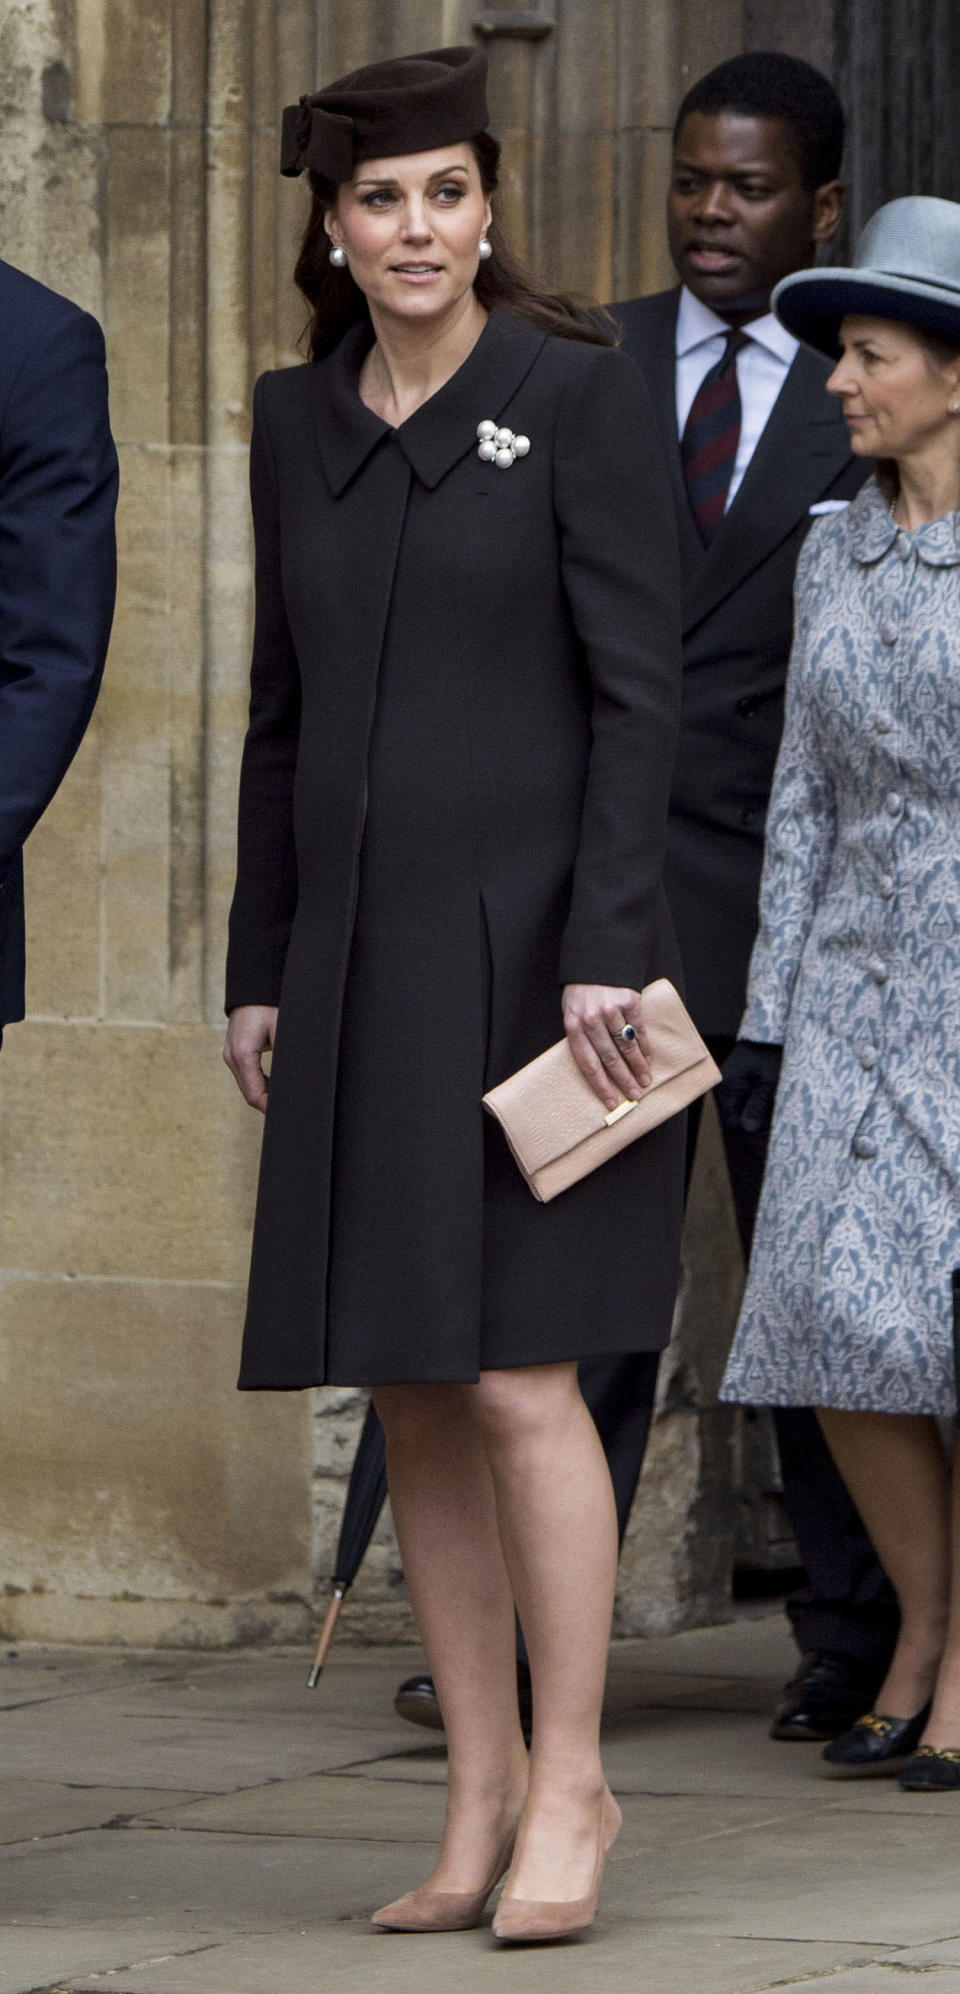 <p>Catherine, Duchess of Cambridge, wears a black coat with a fur hat and nude pumps at the Easter Service at St. George's Chapel on April 1, 2018, in Windsor. (Photo: Getty Images) </p>